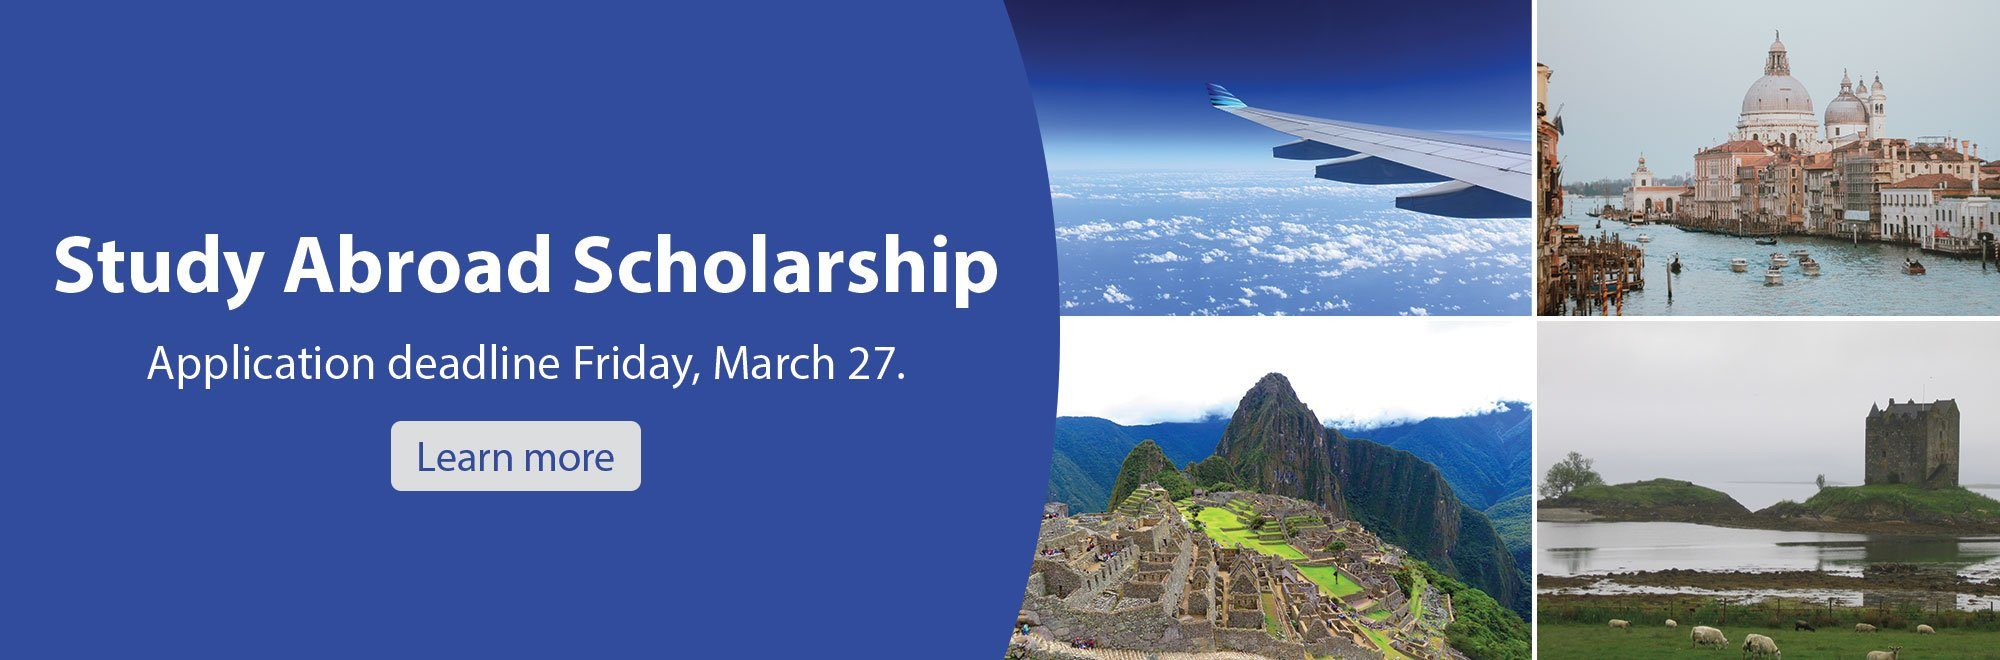 Study Abroad Scholarship. Application deadline Friday, March 27. Learn More.